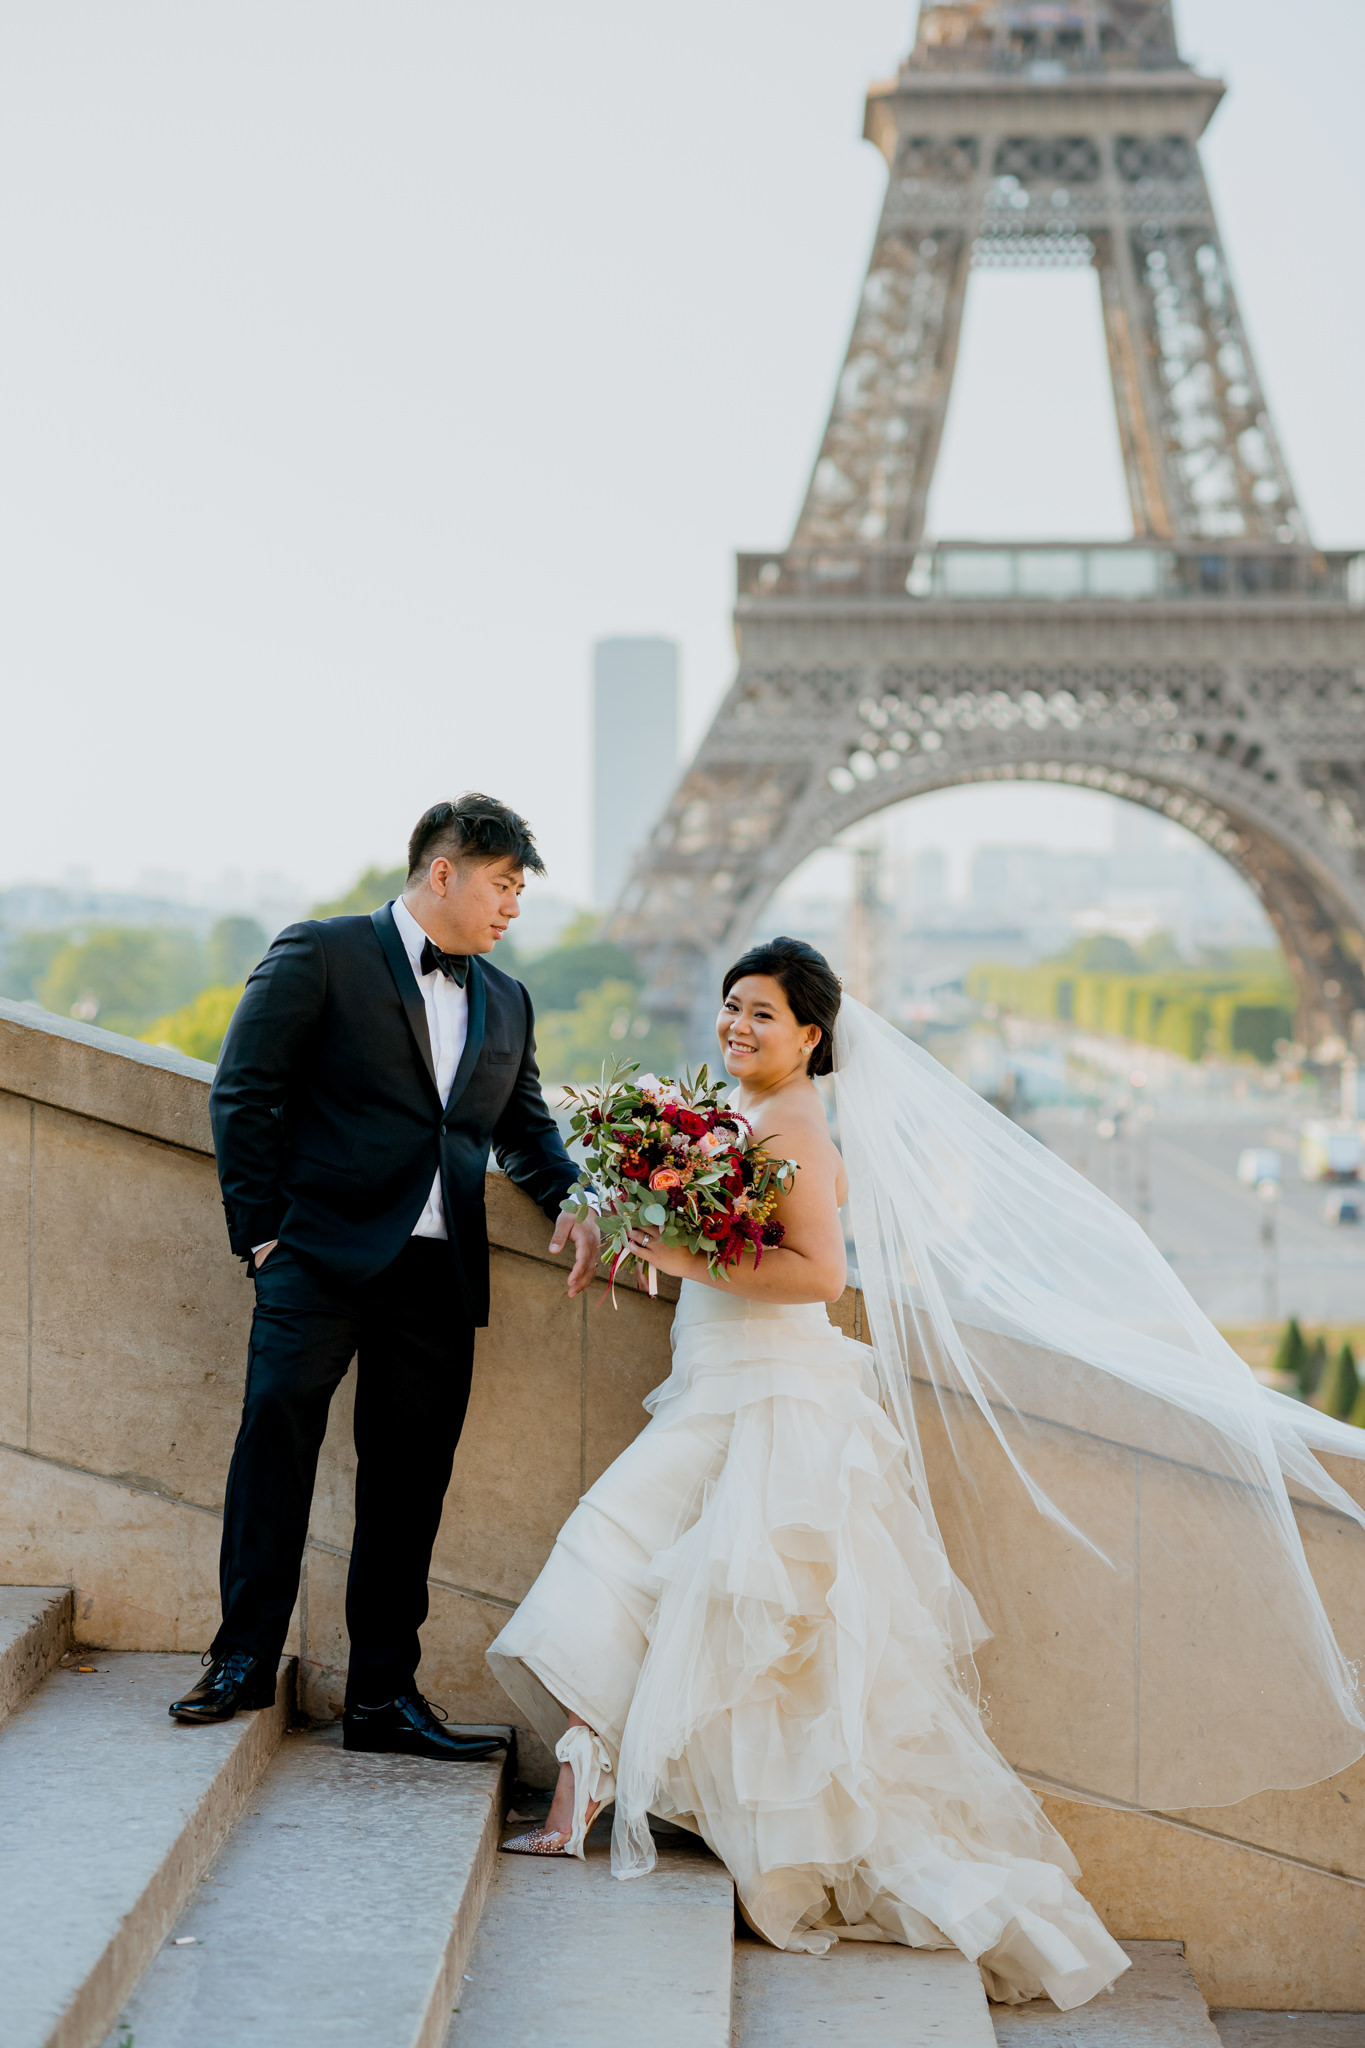 Asian bride and groom stand on steps and laugh in front of the Eiffel Tower.